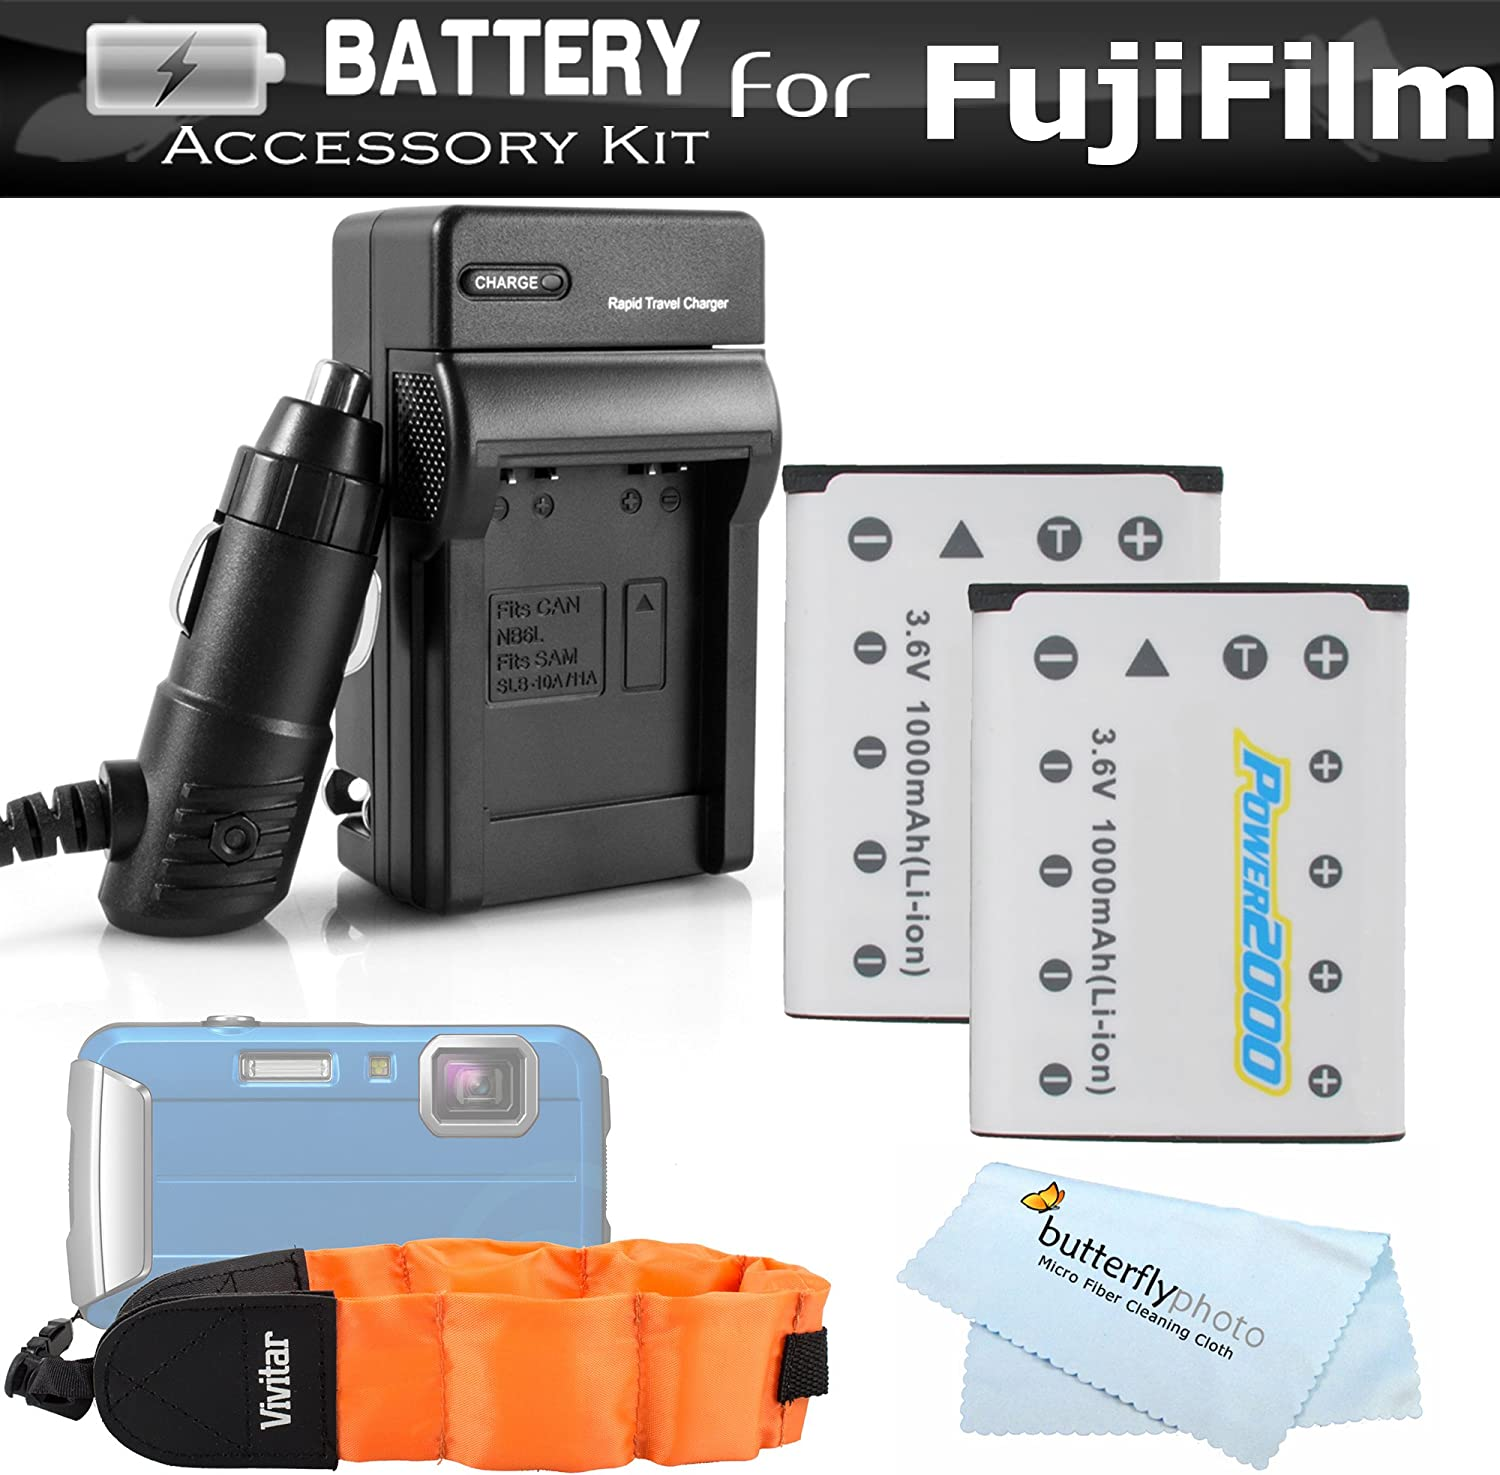 XP90 2 Pack Battery And Charger Kit For Fujifilm FinePix XP70 XP80 Ac//Dc Charger NP-45s Batteries More Float Strap XP120 Waterproof Digital Camera Includes 2 Replacement Fuji NP-45A 1000Mah